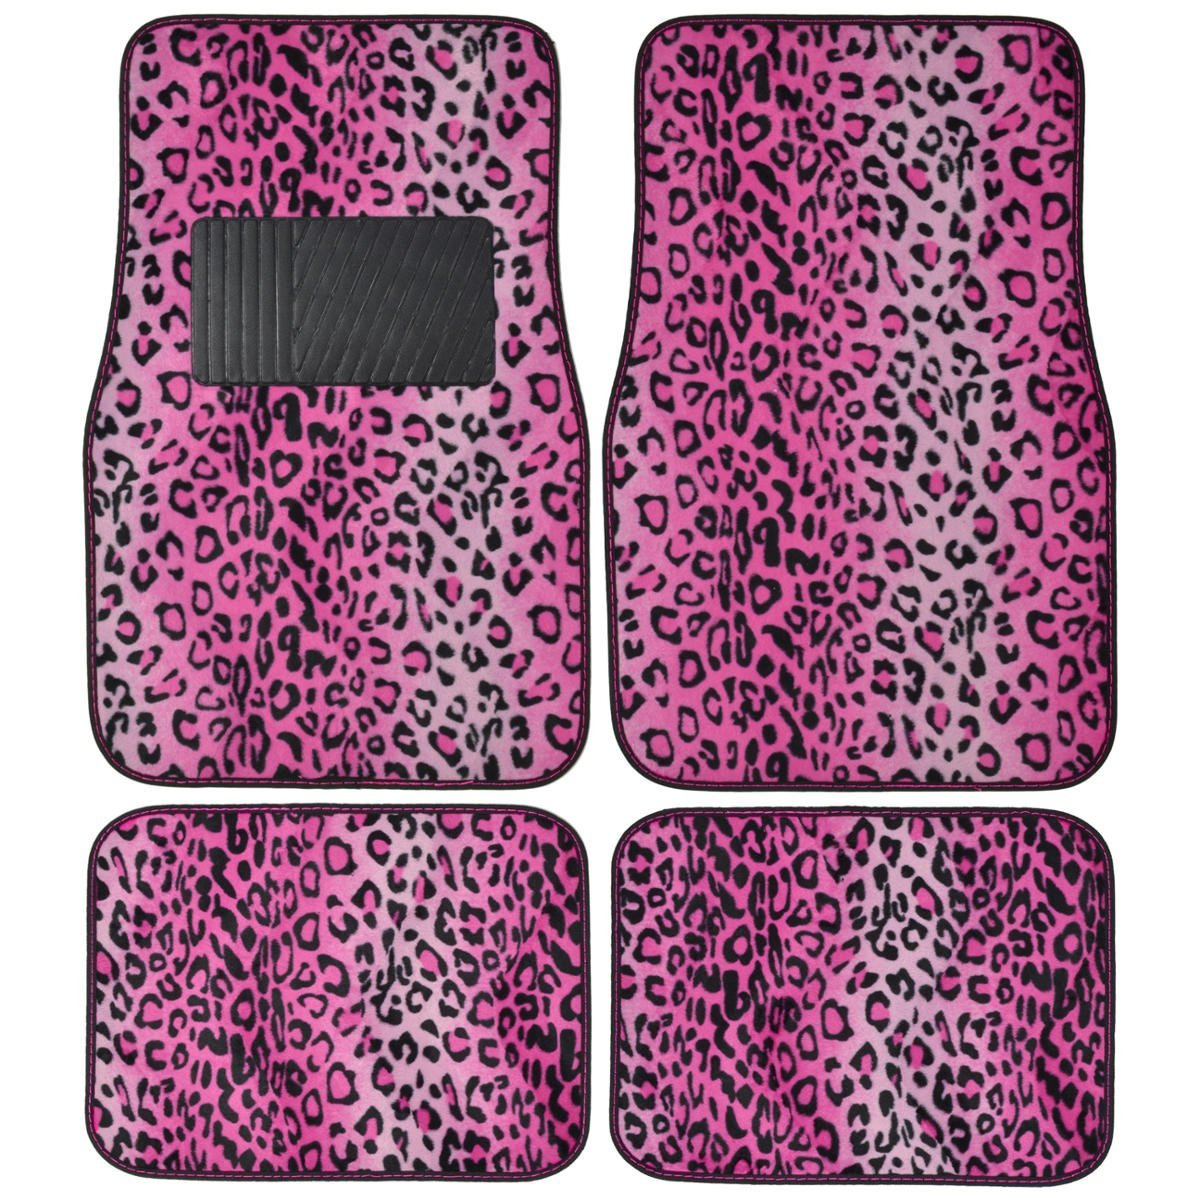 Pink Leopard Animal Print Front & Rear Carpet Car Truck SUV Floor Mats, Universal size fits most vehicles By BDK